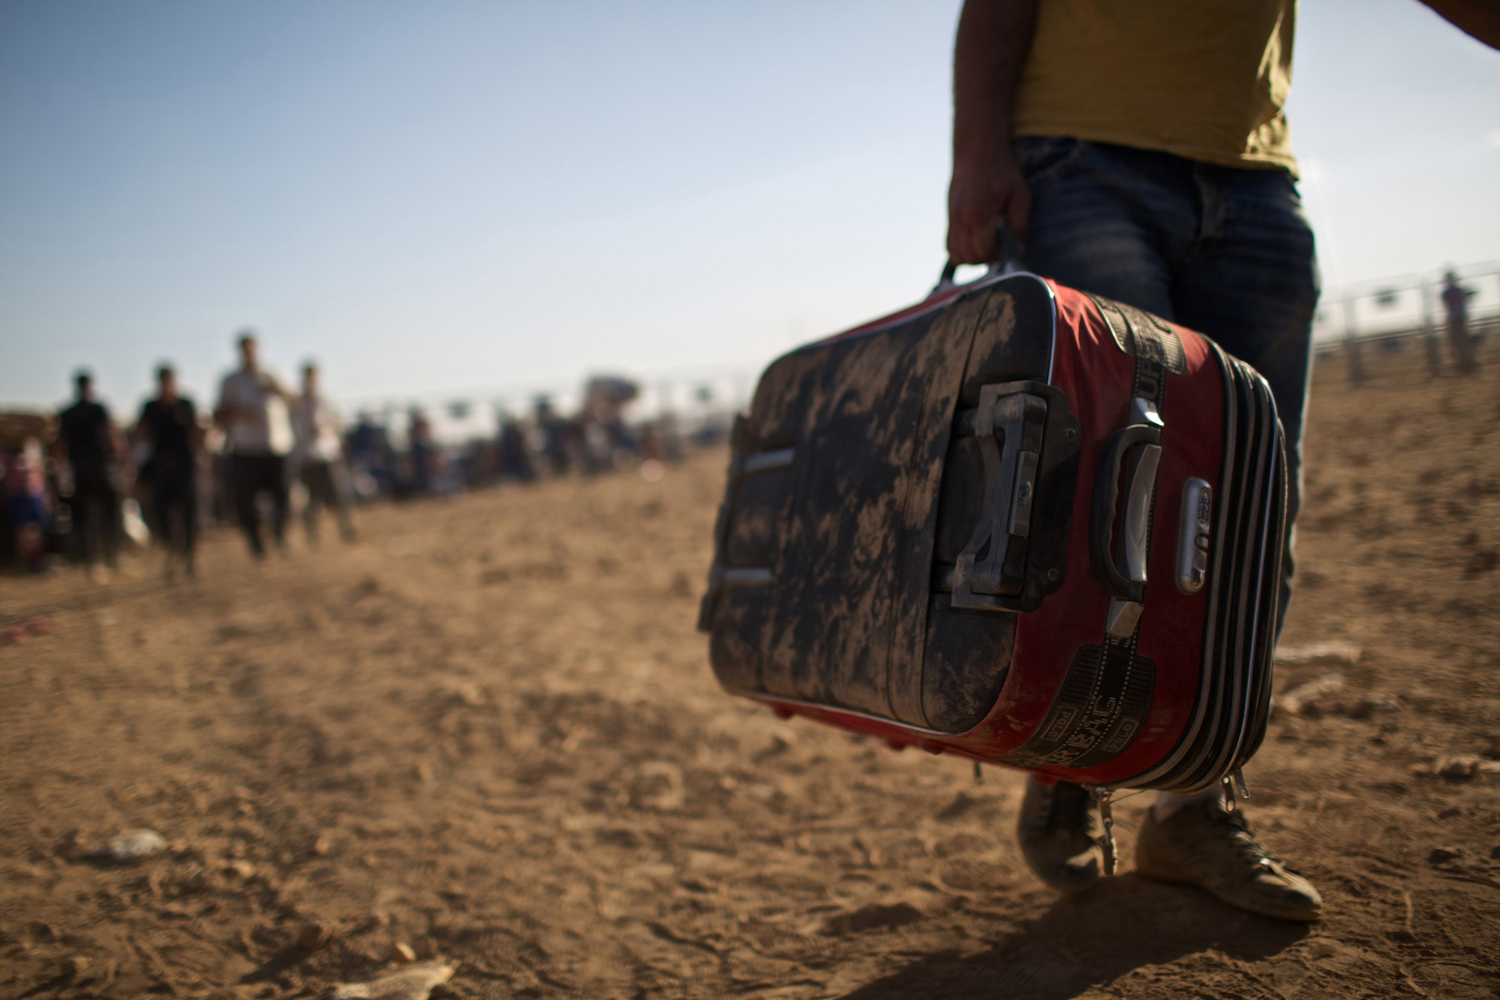 Syrians cross into Yumurtalik, Turkey on Sept. 20, 2014.